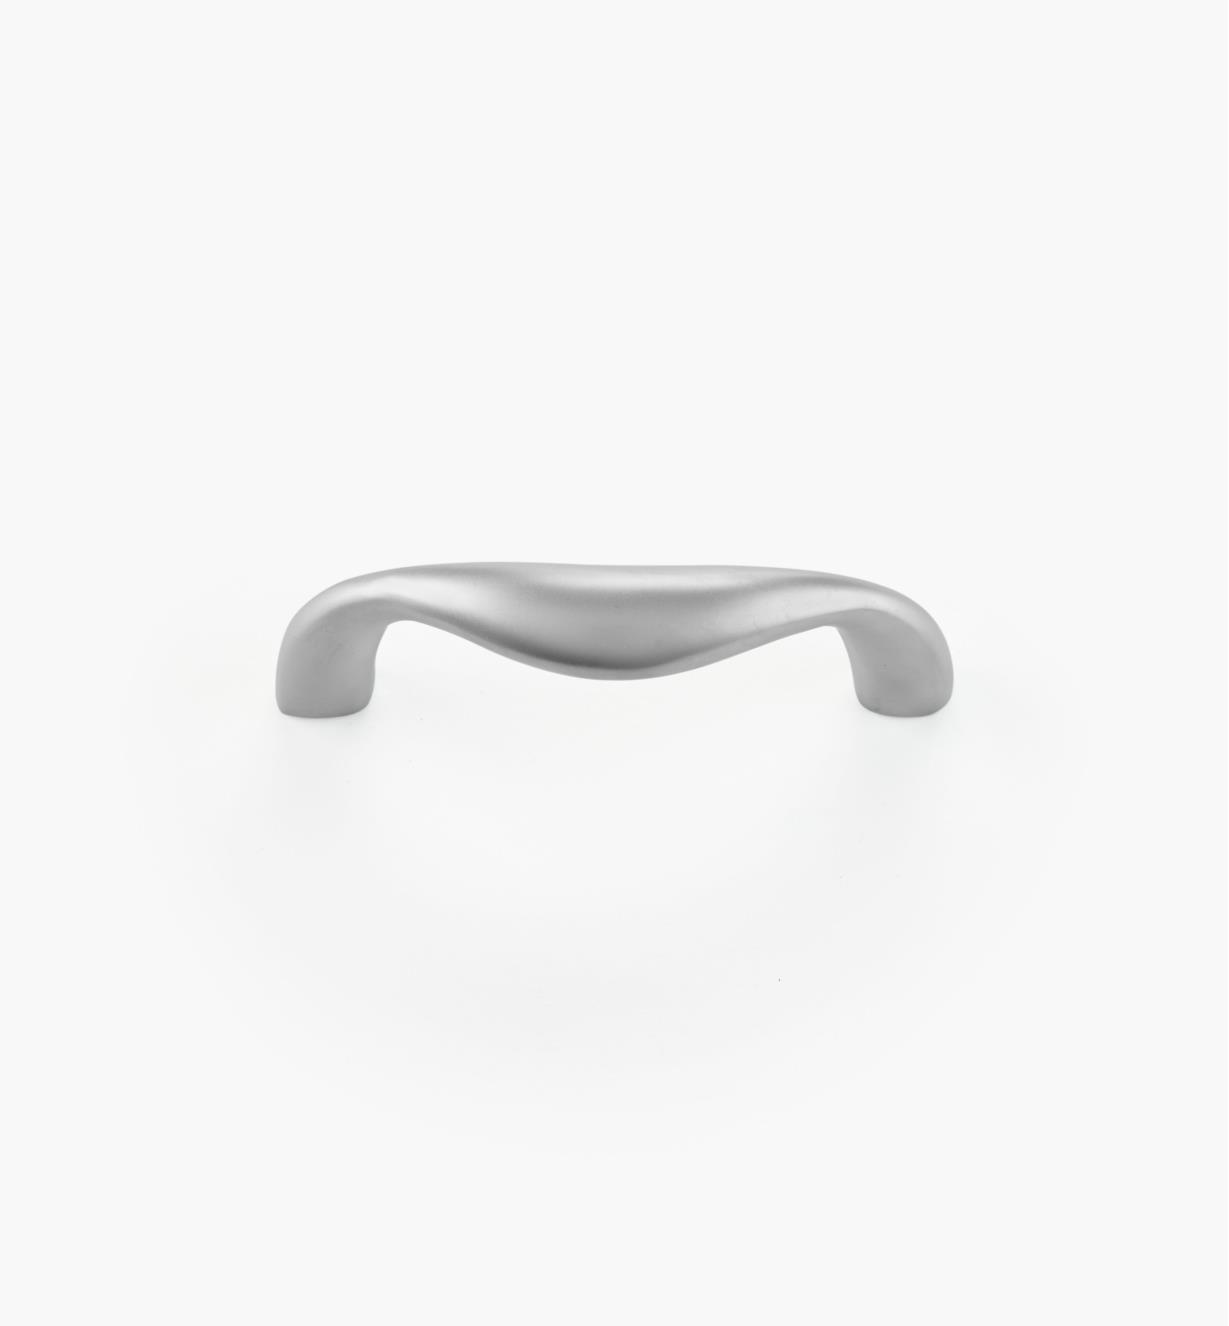 00W5865 - 64mm Matte Chrome Handle